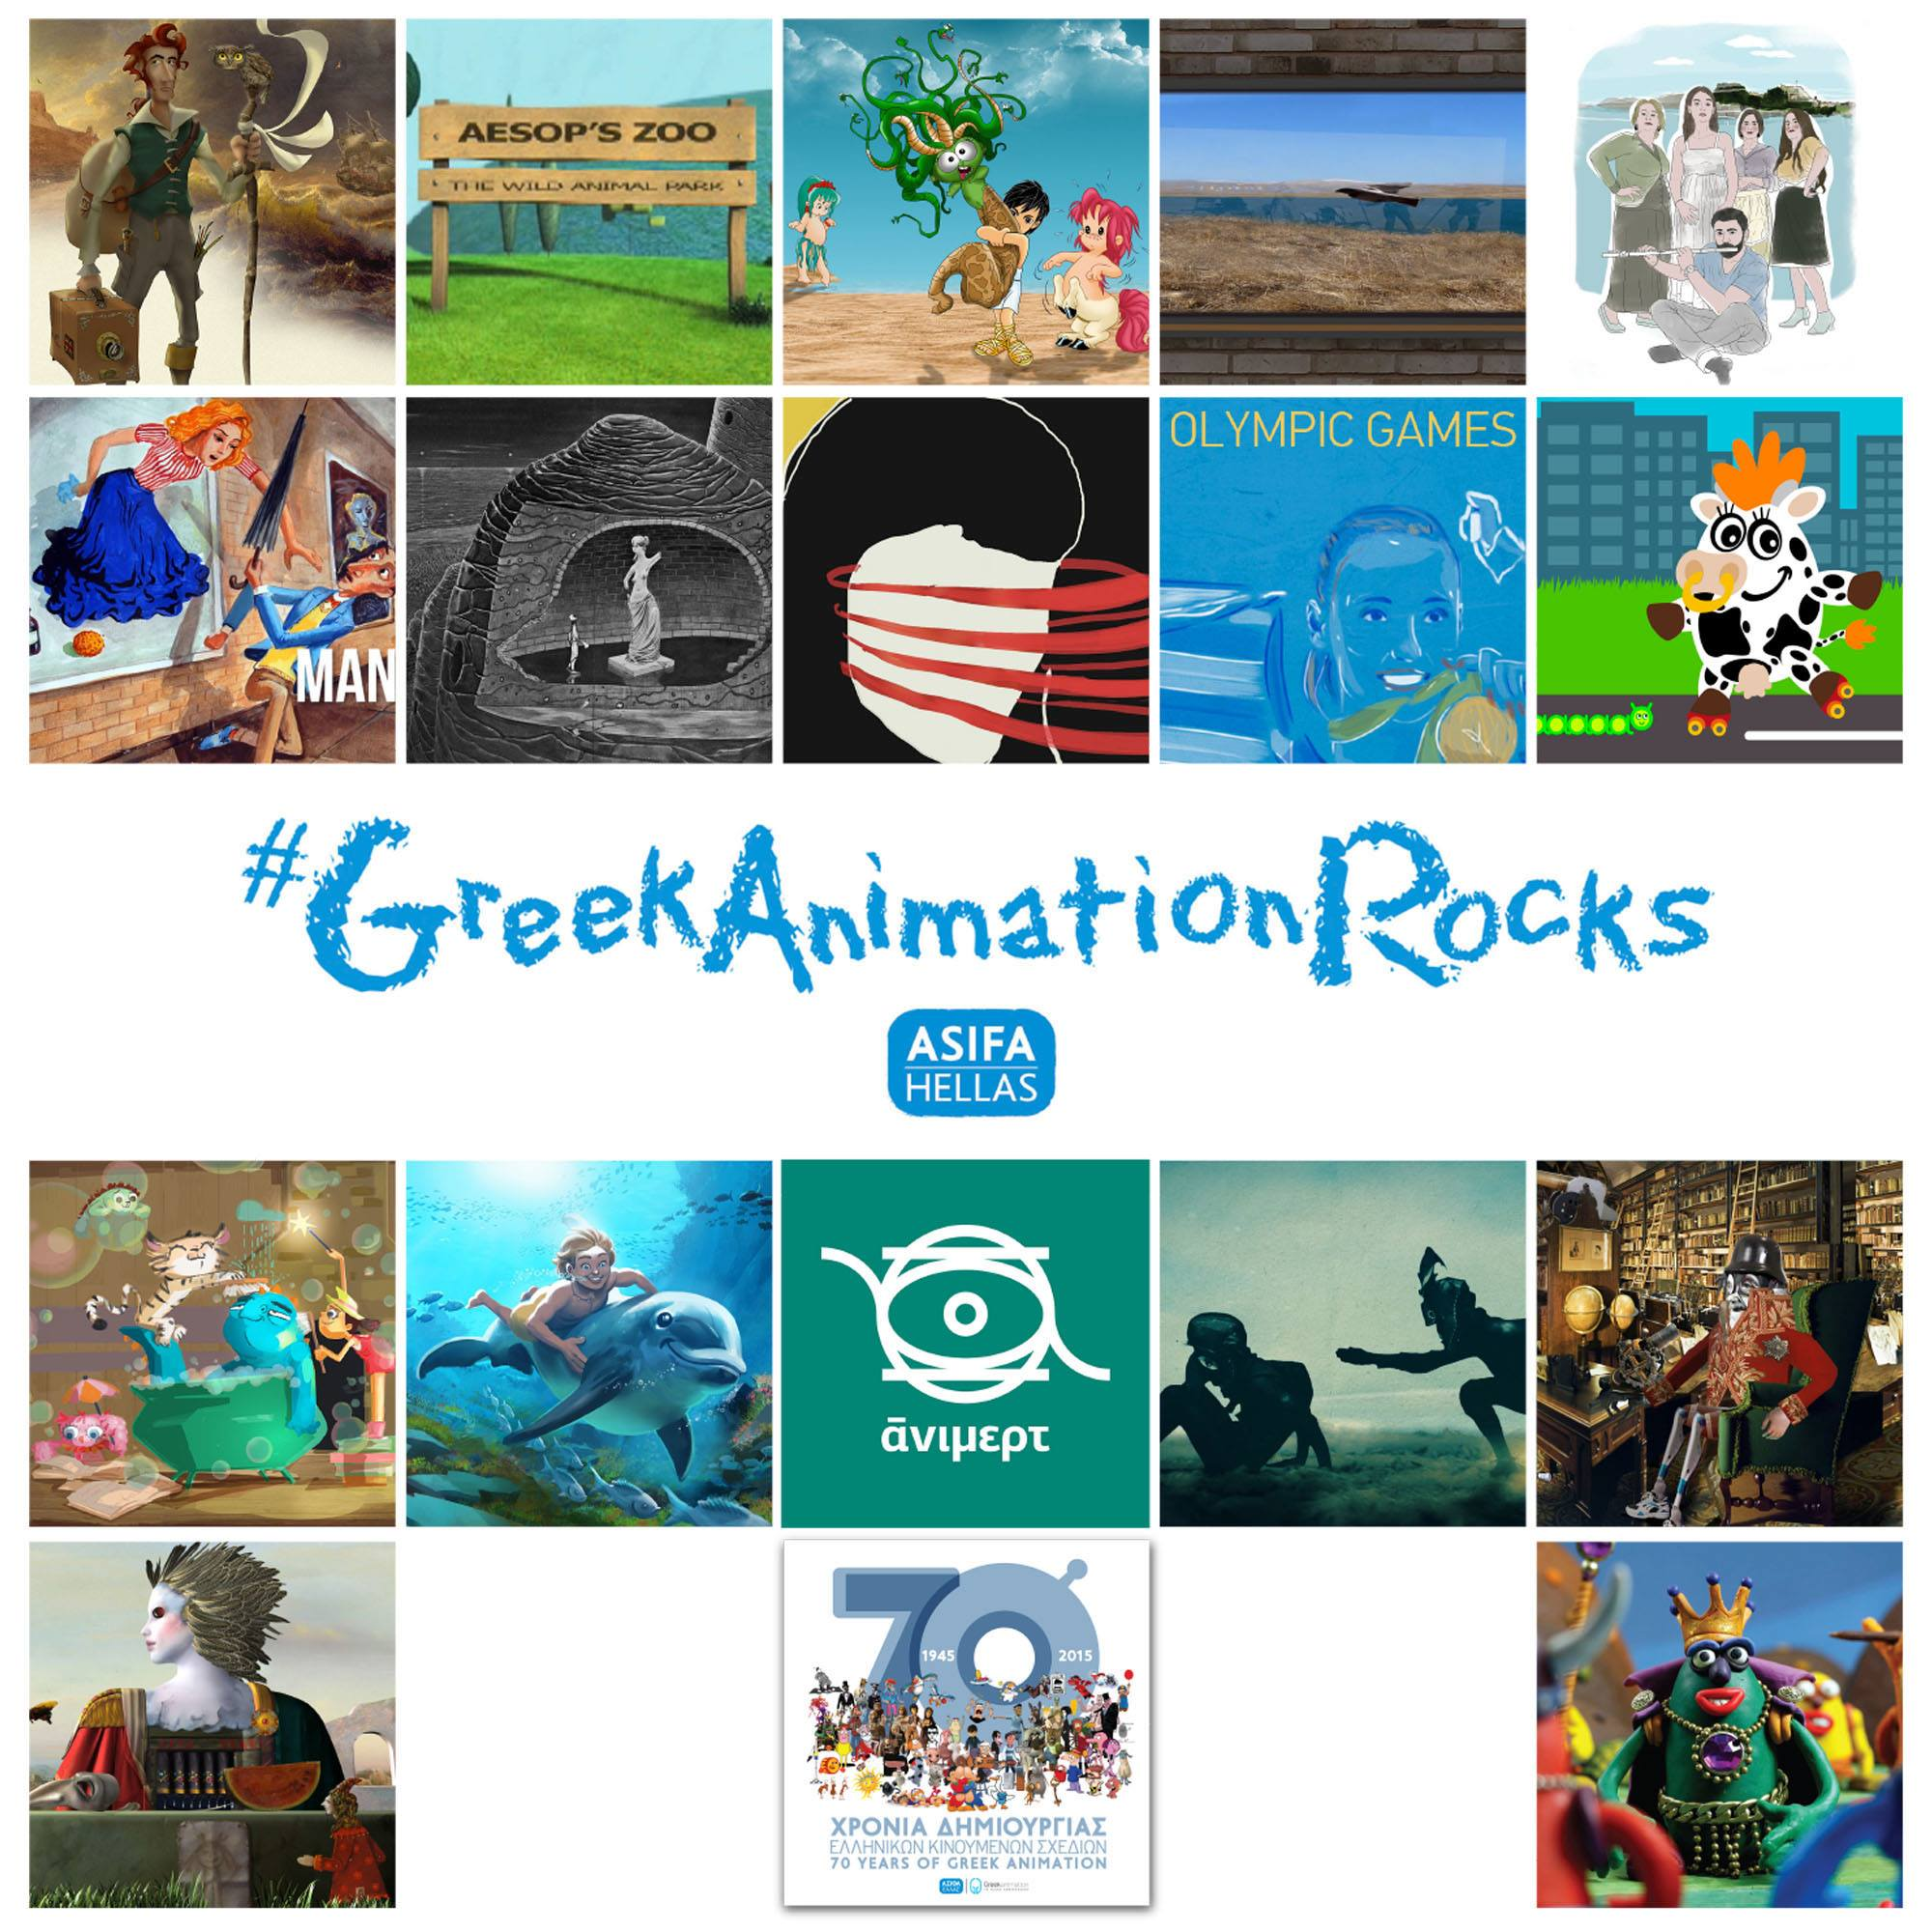 greekanimationrocks